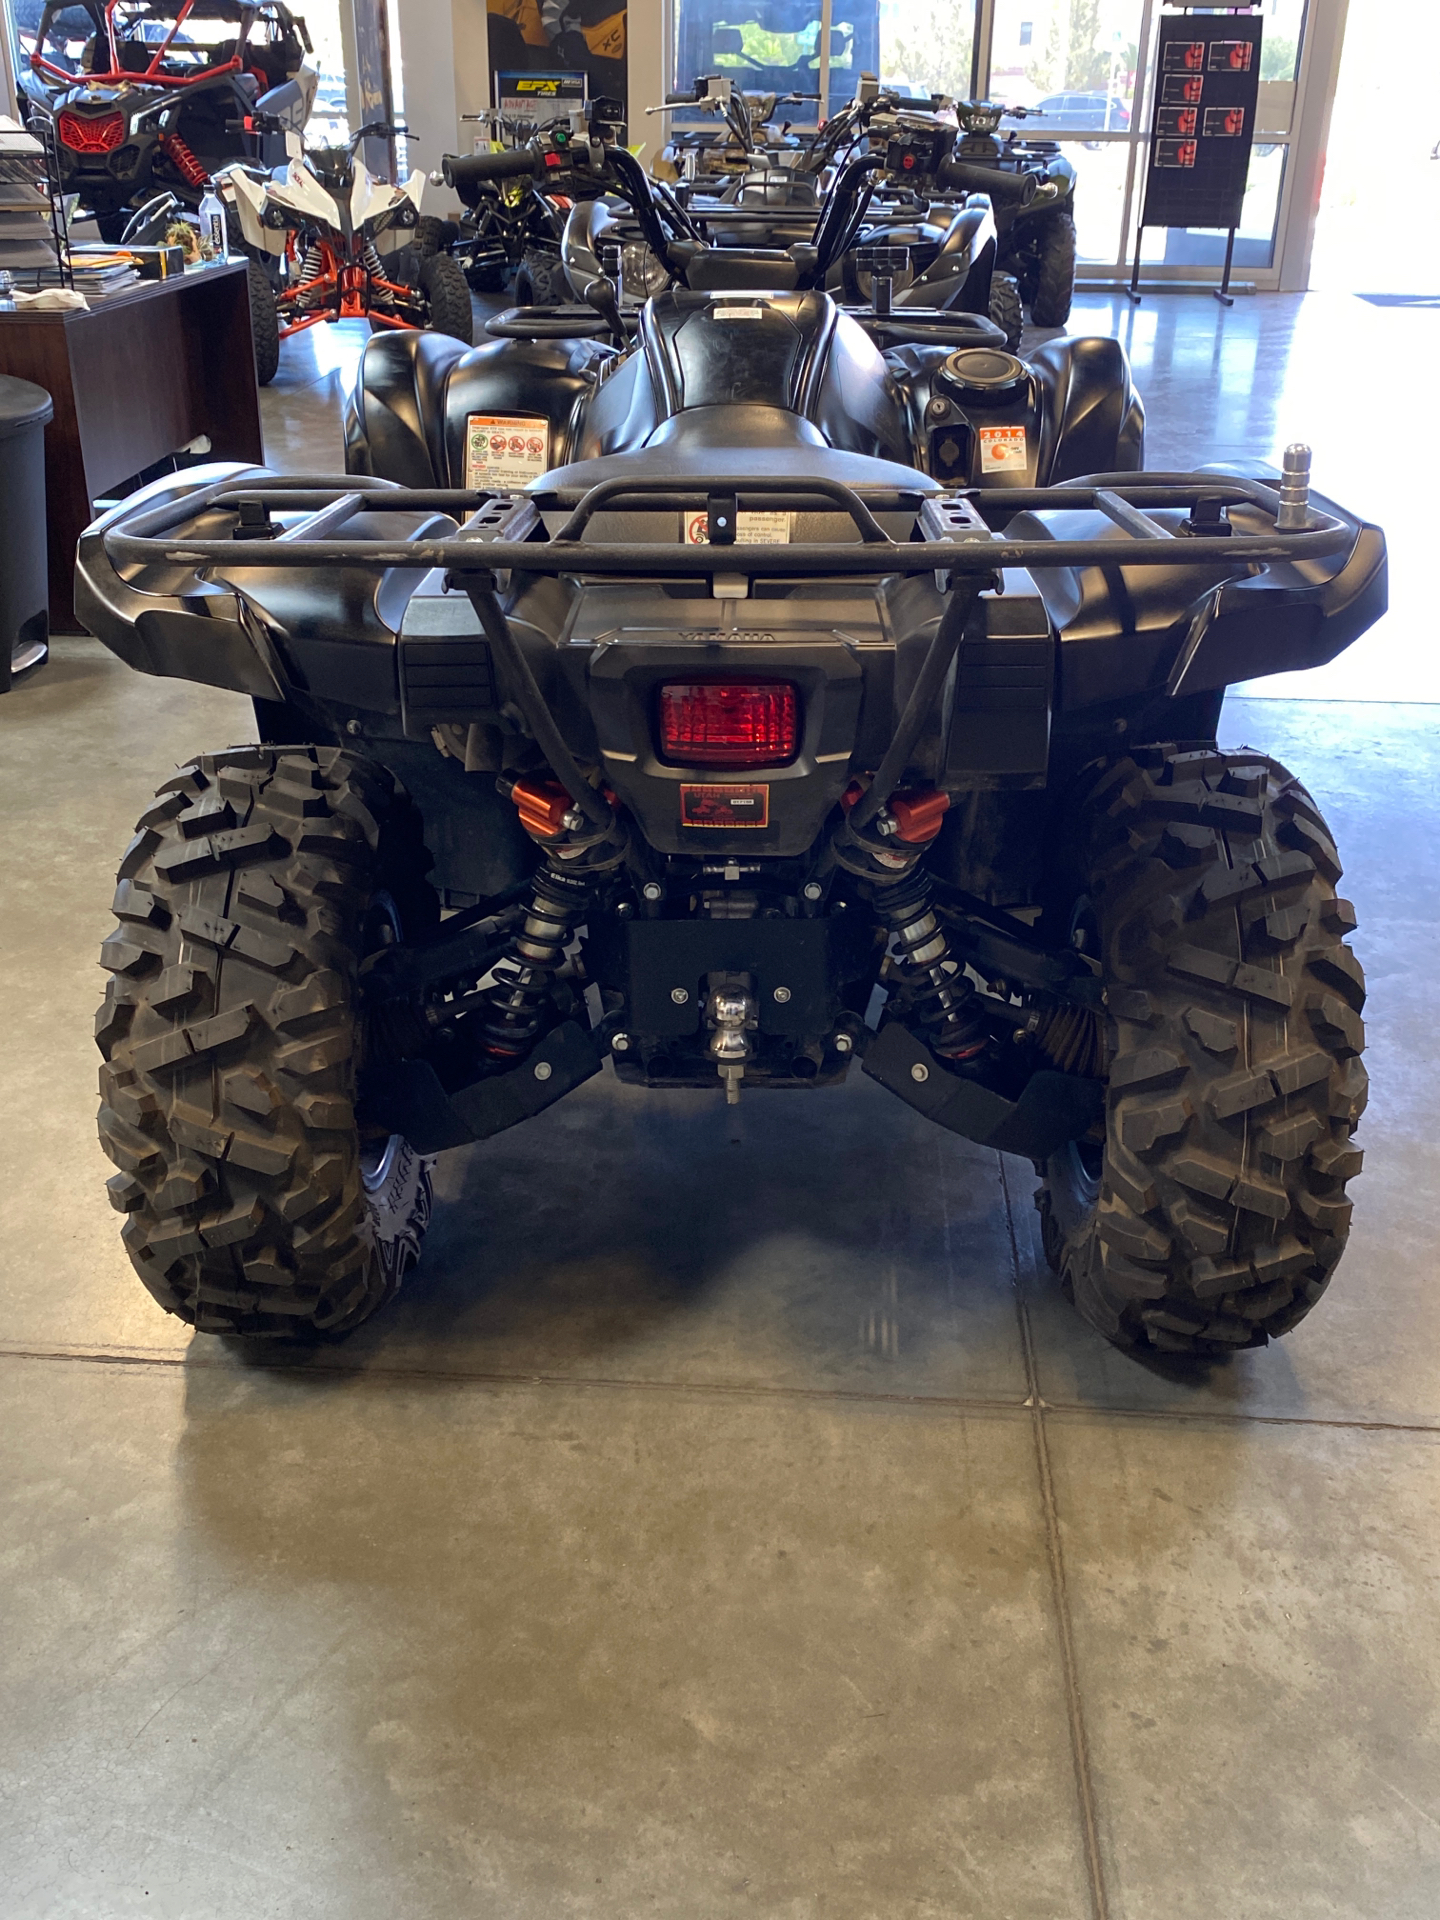 2013 Yamaha Grizzly 700 FI Auto. 4x4 EPS Special Edition in Las Vegas, Nevada - Photo 4